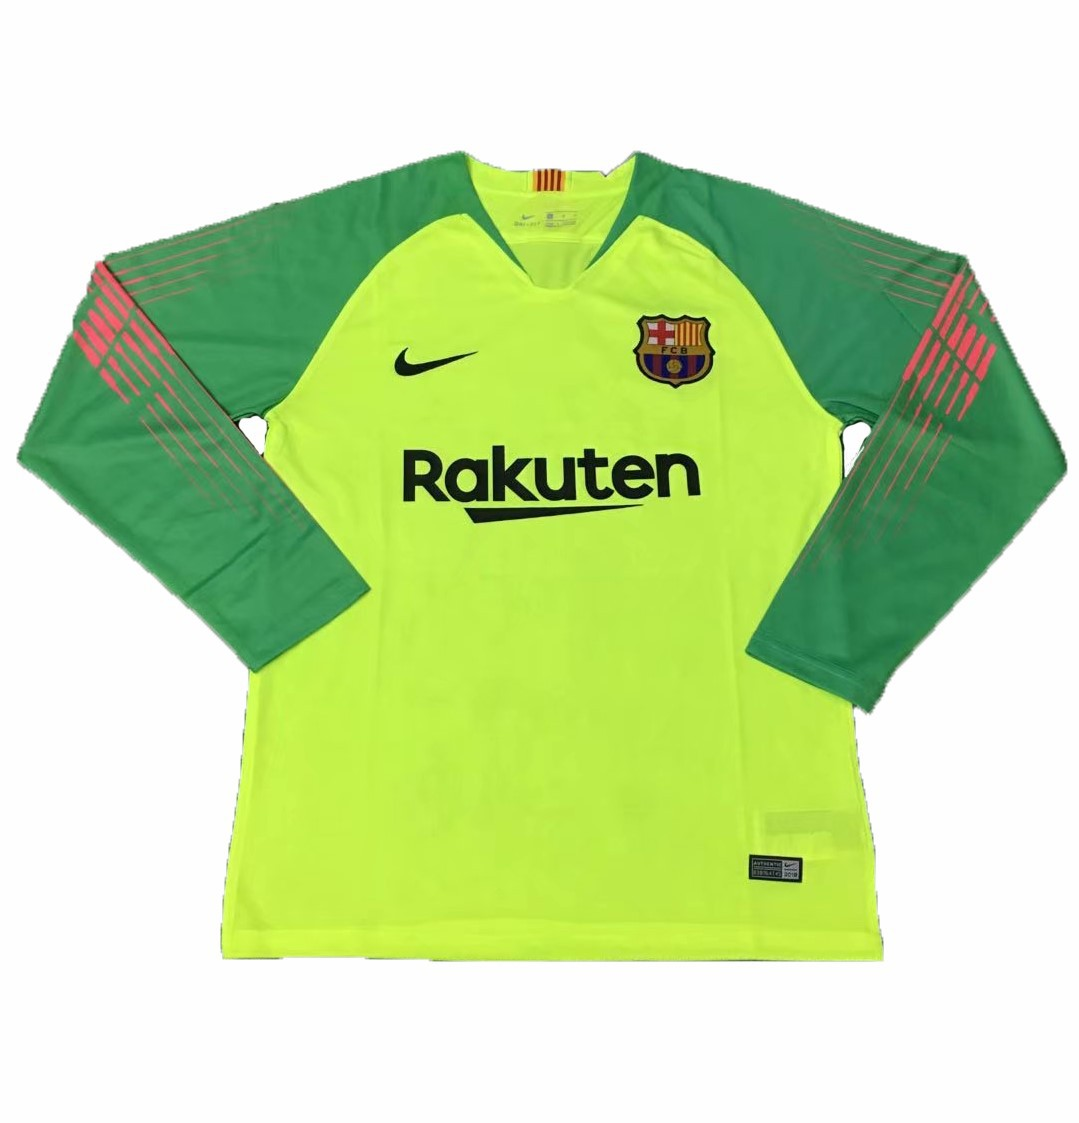 buy online b452f 53b75 Barcelona Lime Green Kit,Barcelona Green Away Shirt,2018-2019 Barcelona  Green Goalkeeper Long Sleeve Soccer Jersey